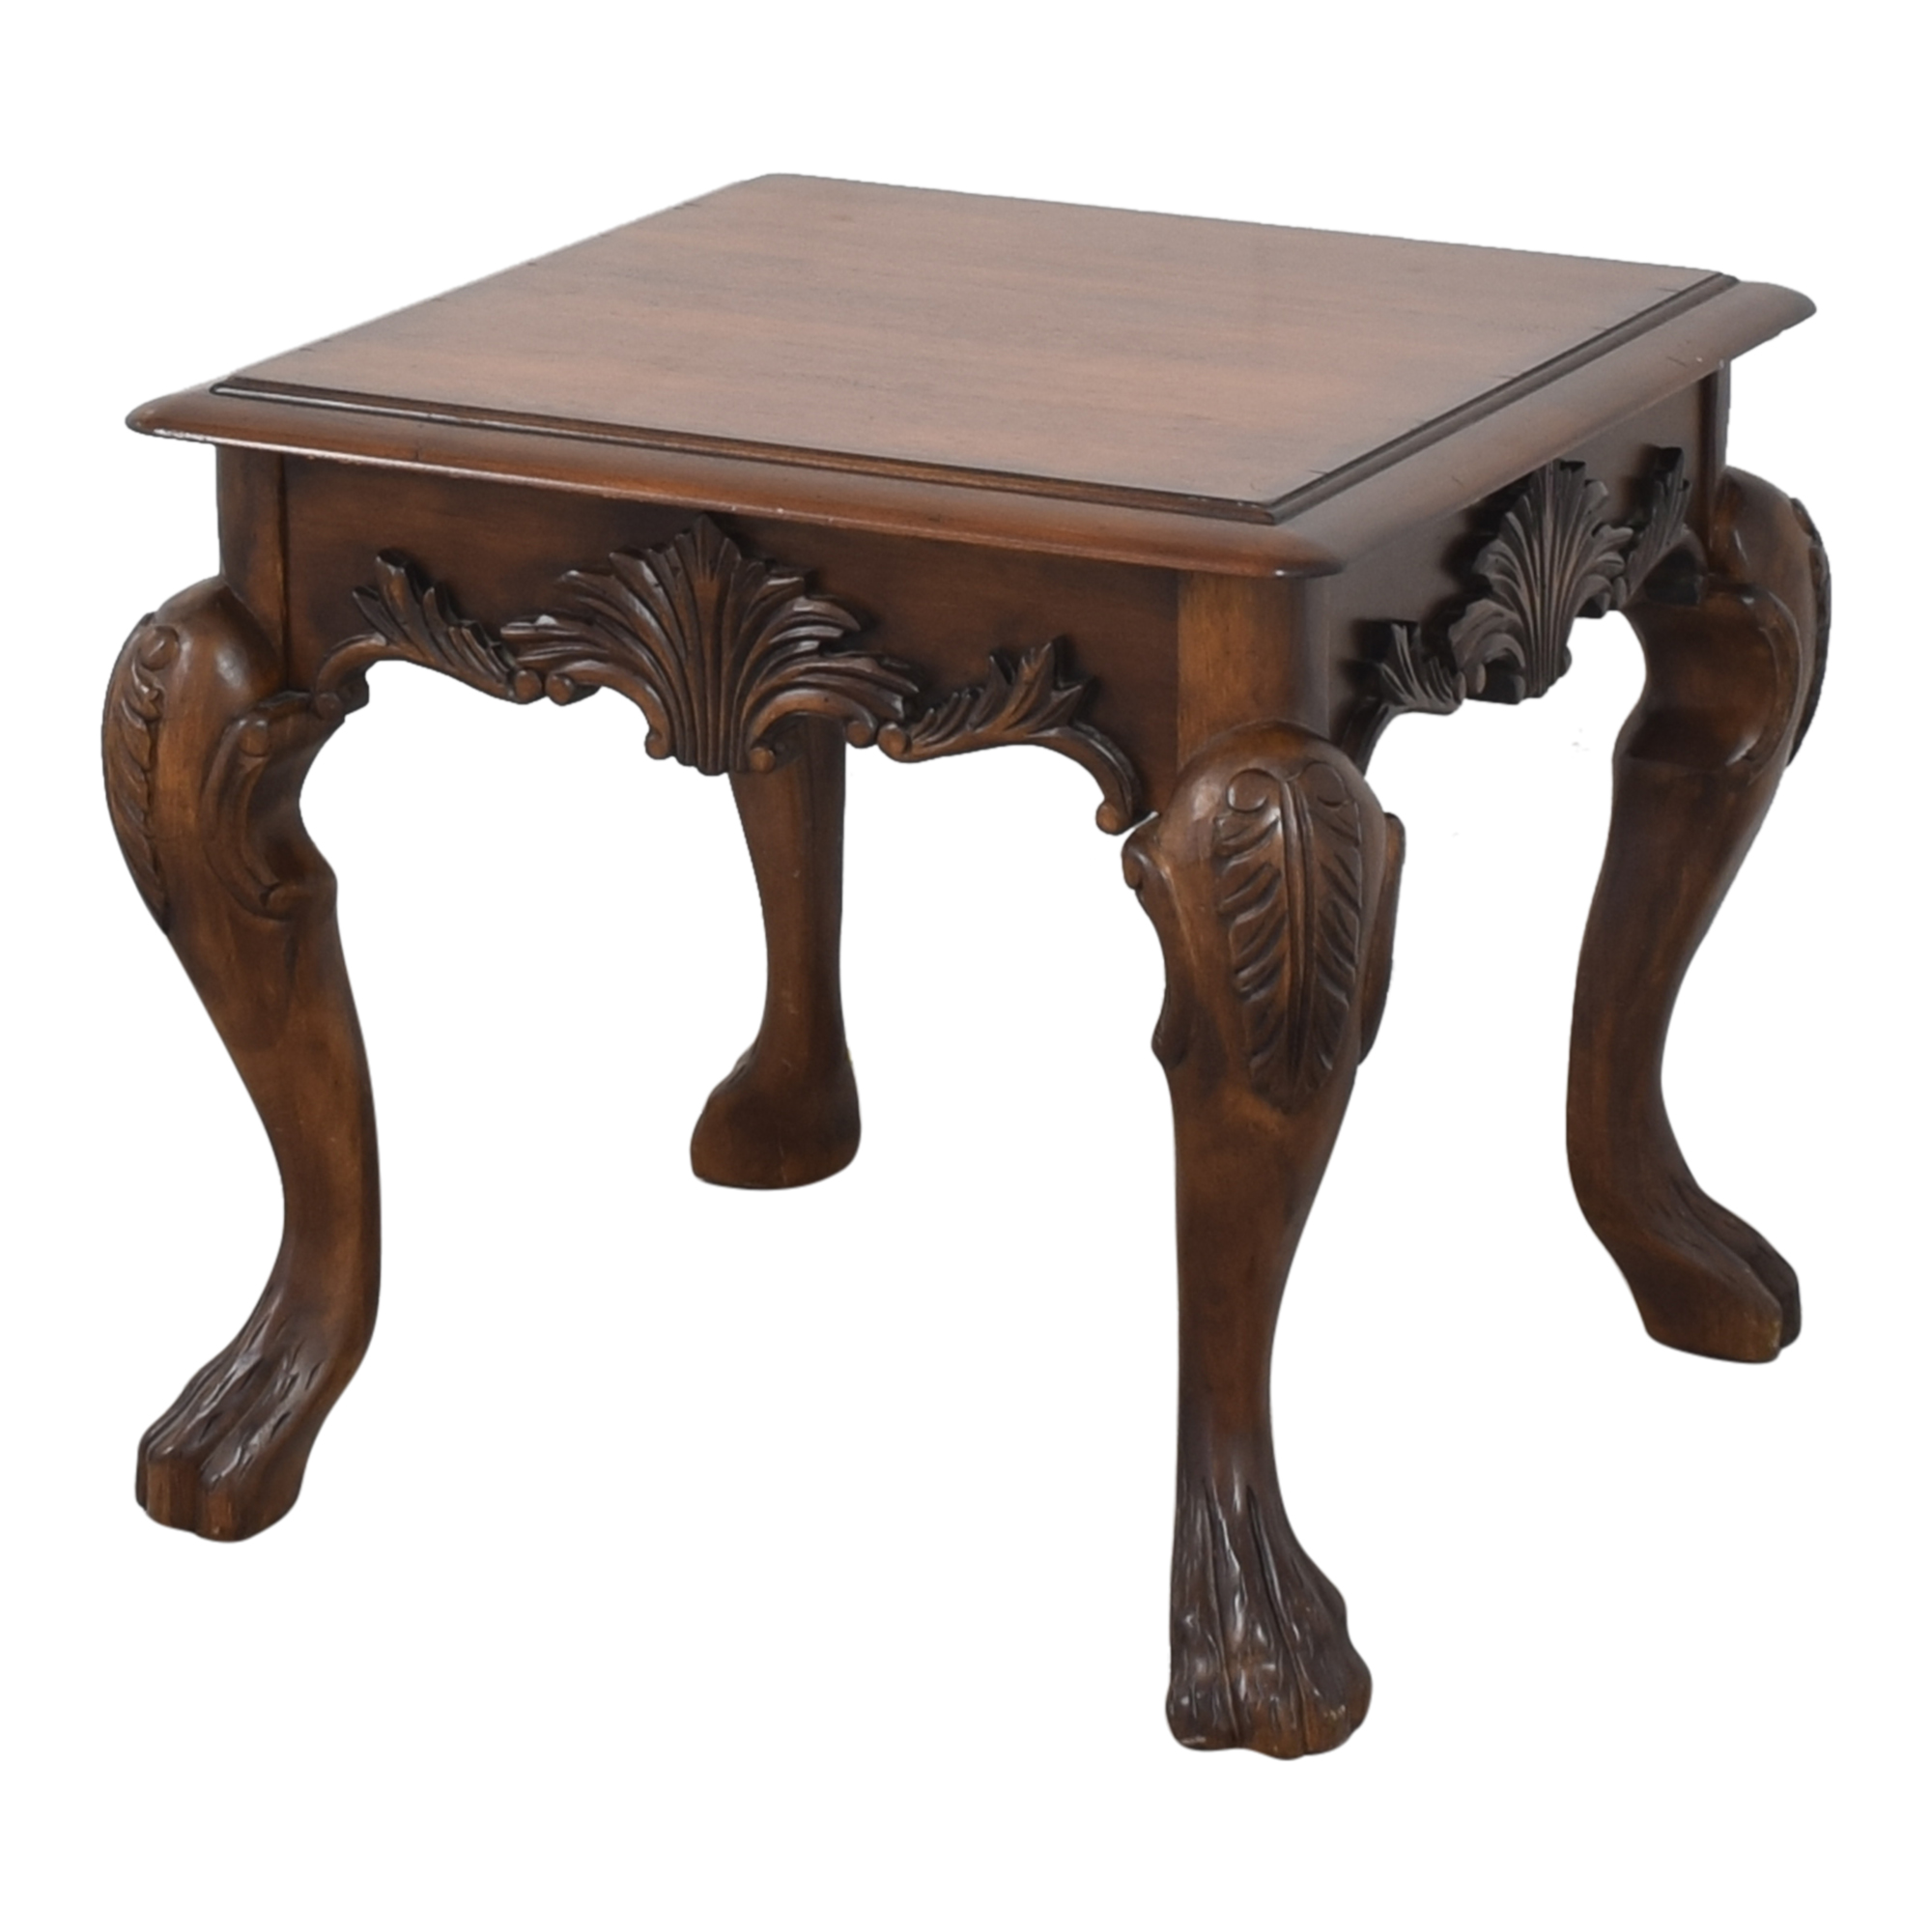 Ethan Allen Ethan Allen Cabriole End Table on sale